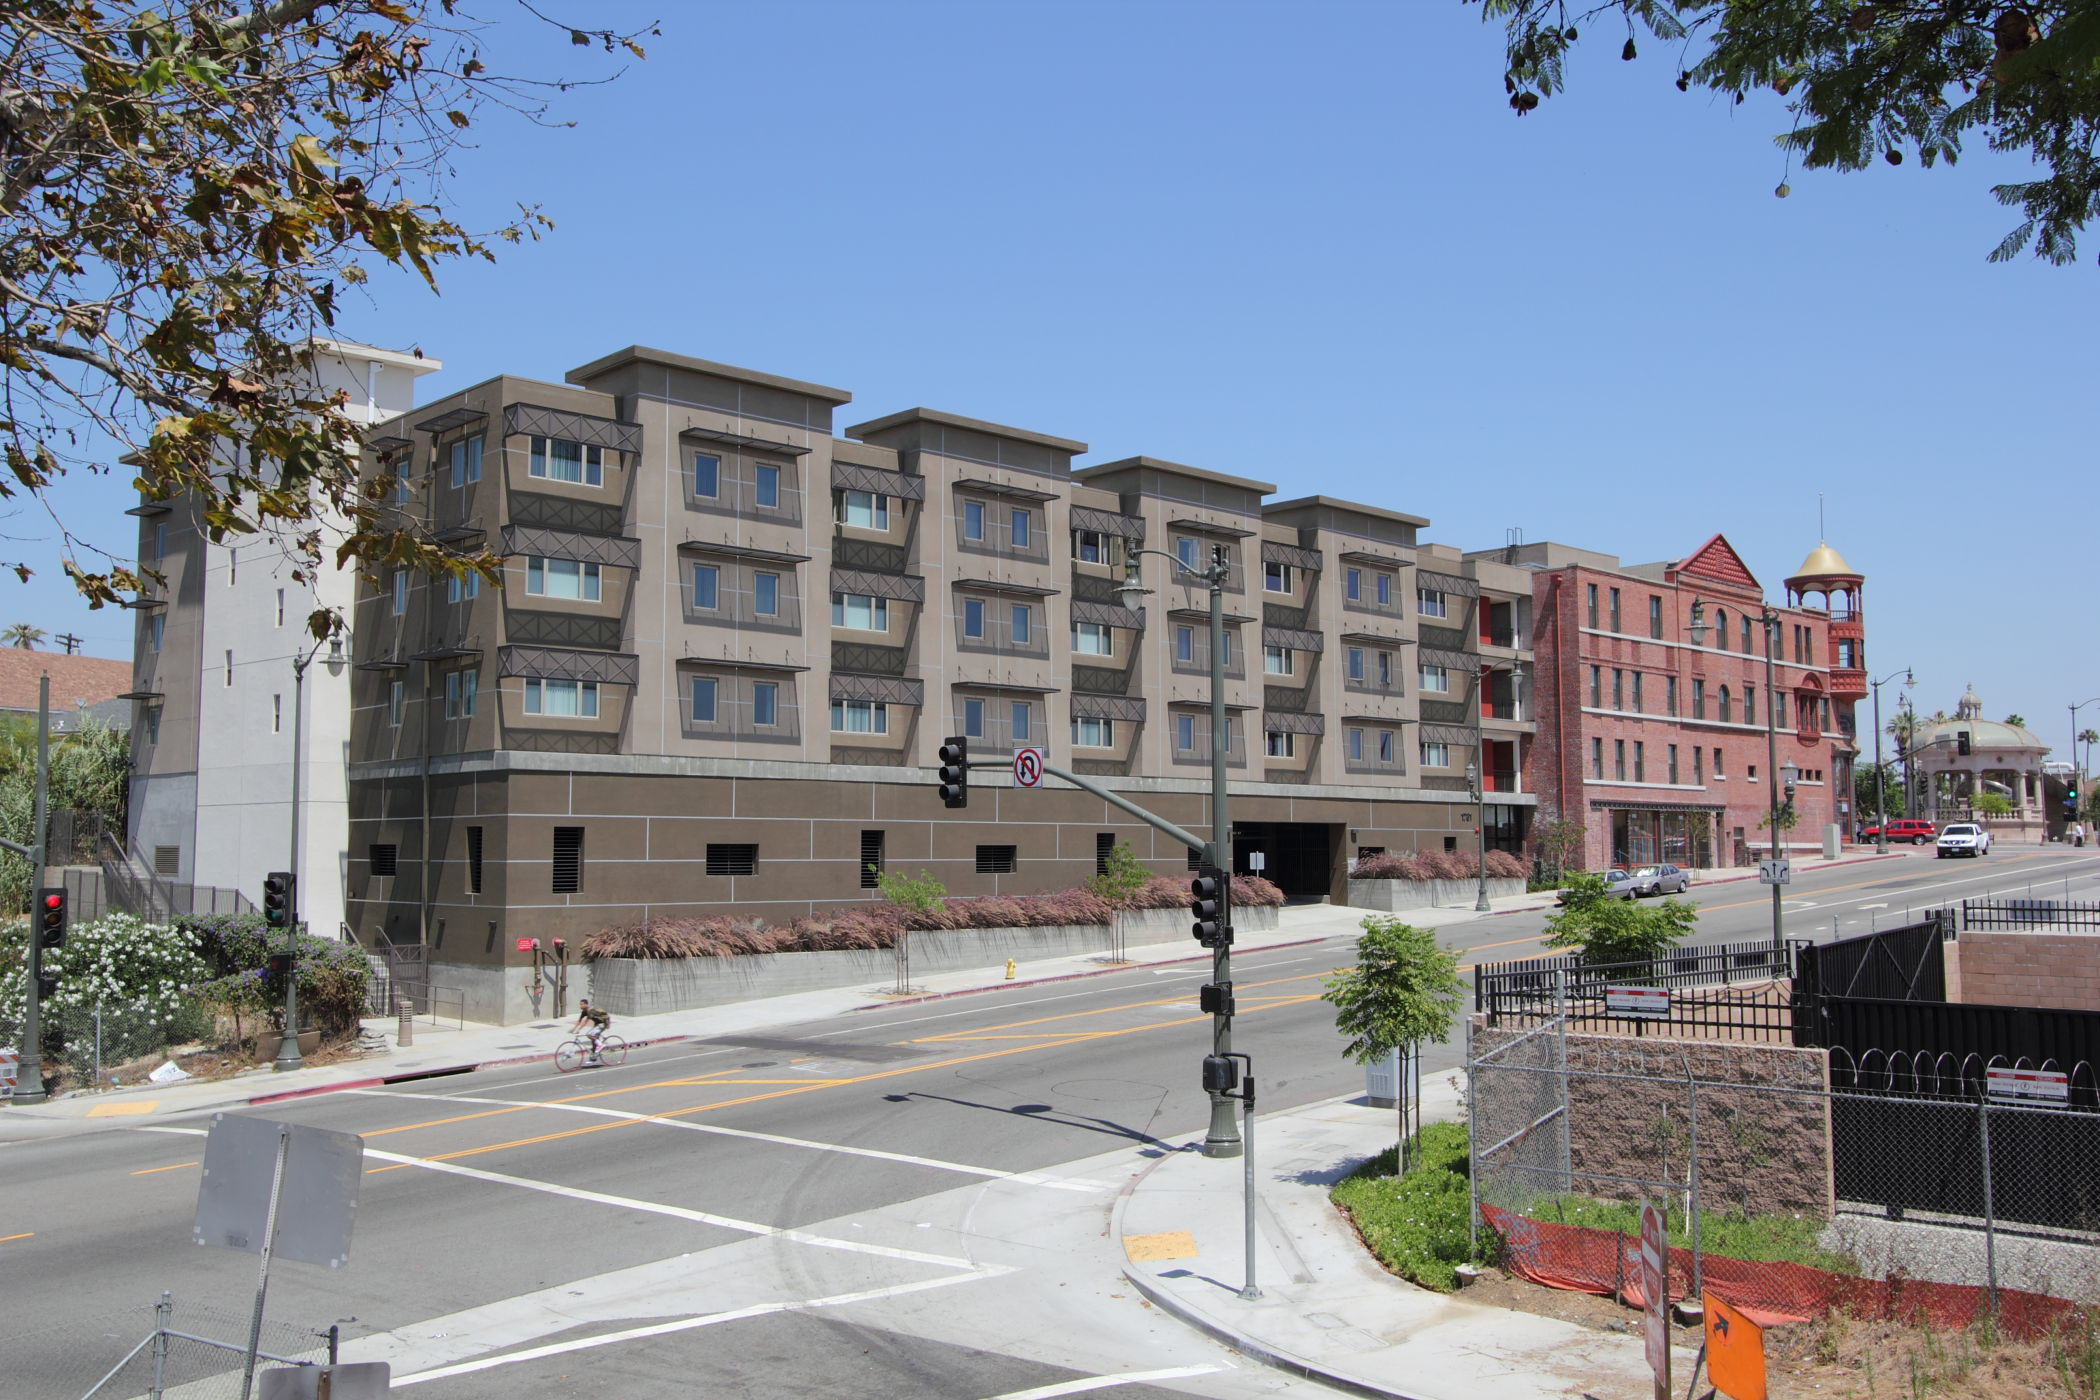 New affordable housing for mariachis, who congregate daily in the nearby Mariachi Plaza waiting to be hired.